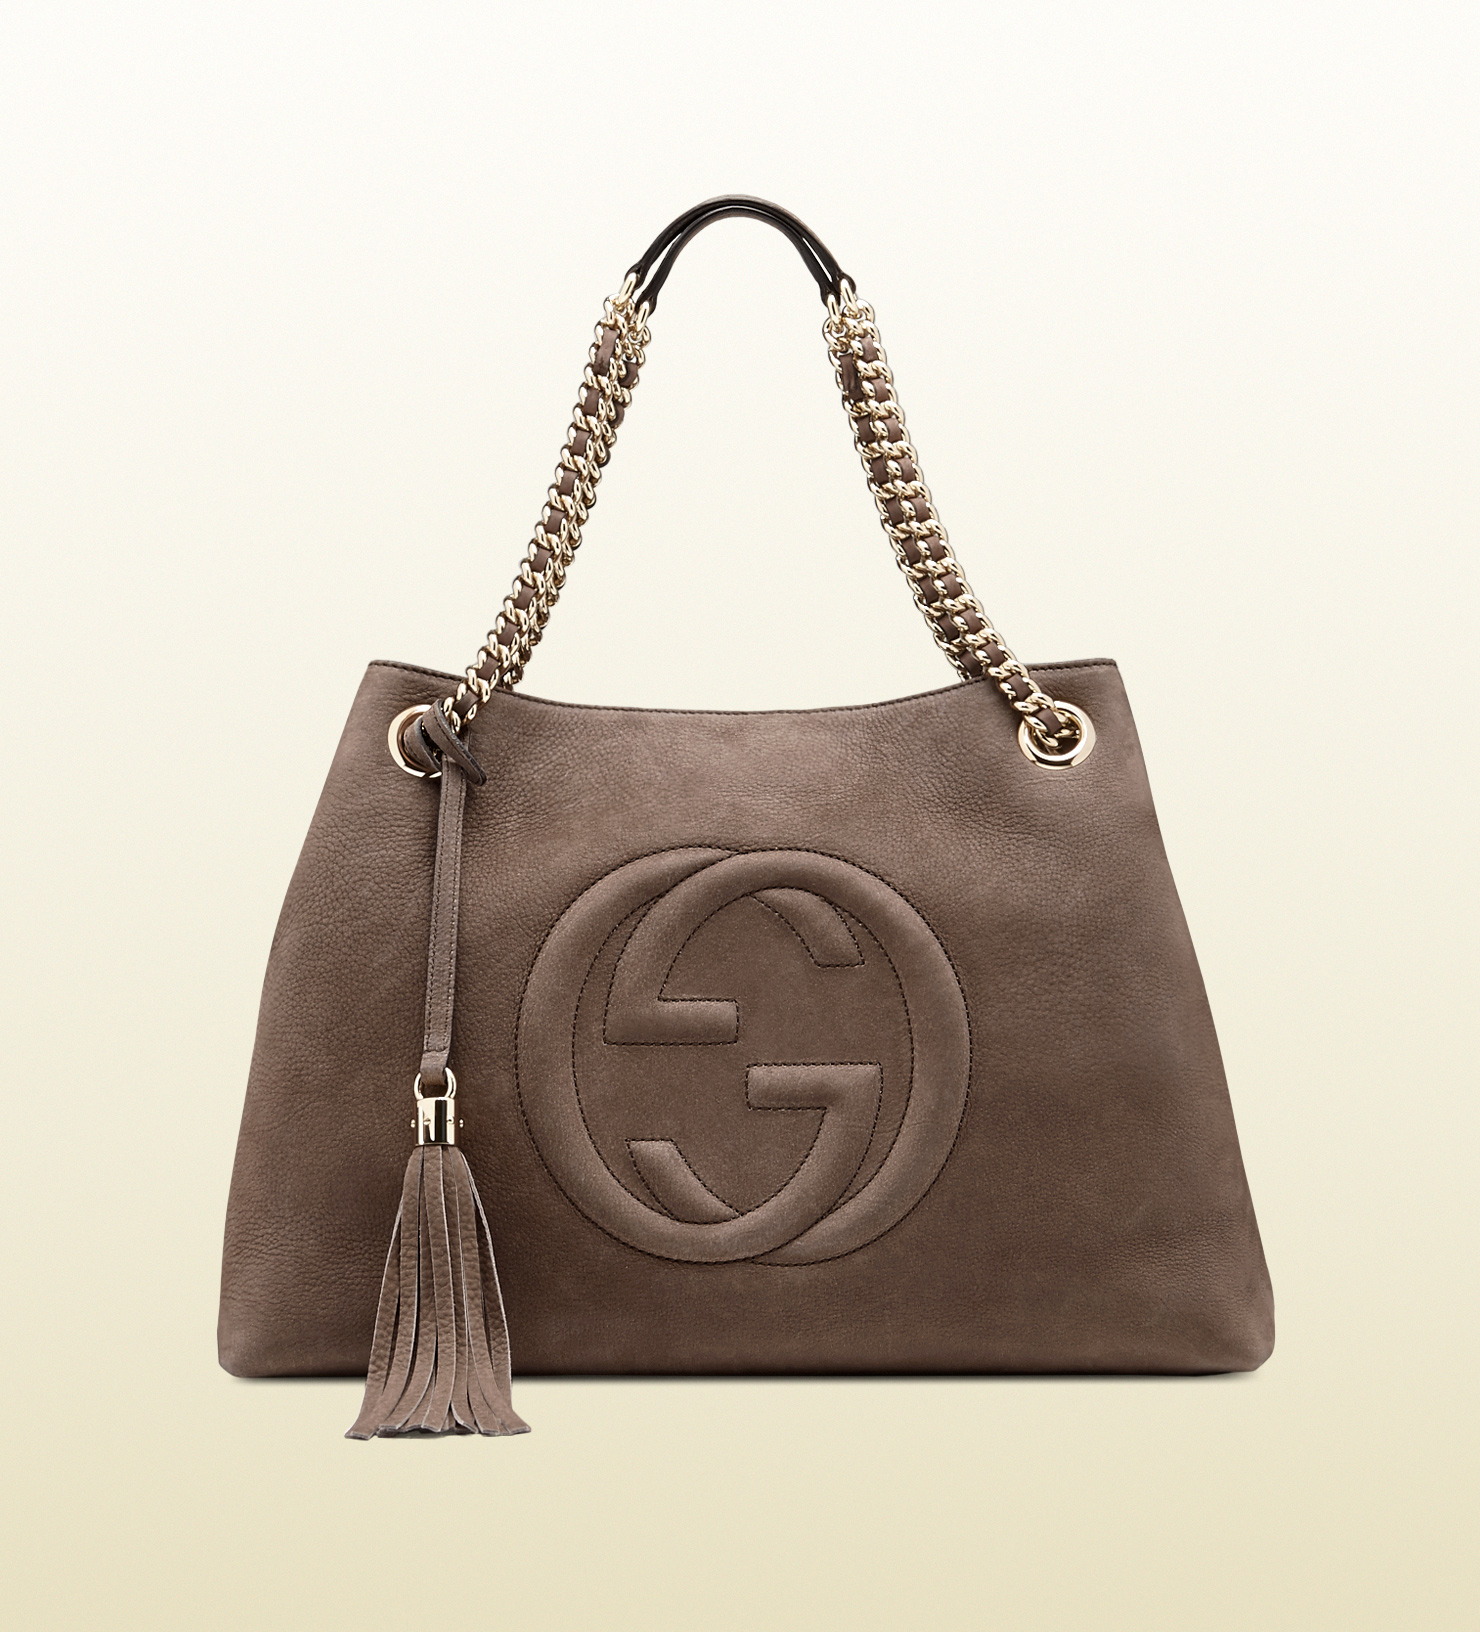 lyst gucci soho nubuck leather shoulder bag in gray. Black Bedroom Furniture Sets. Home Design Ideas